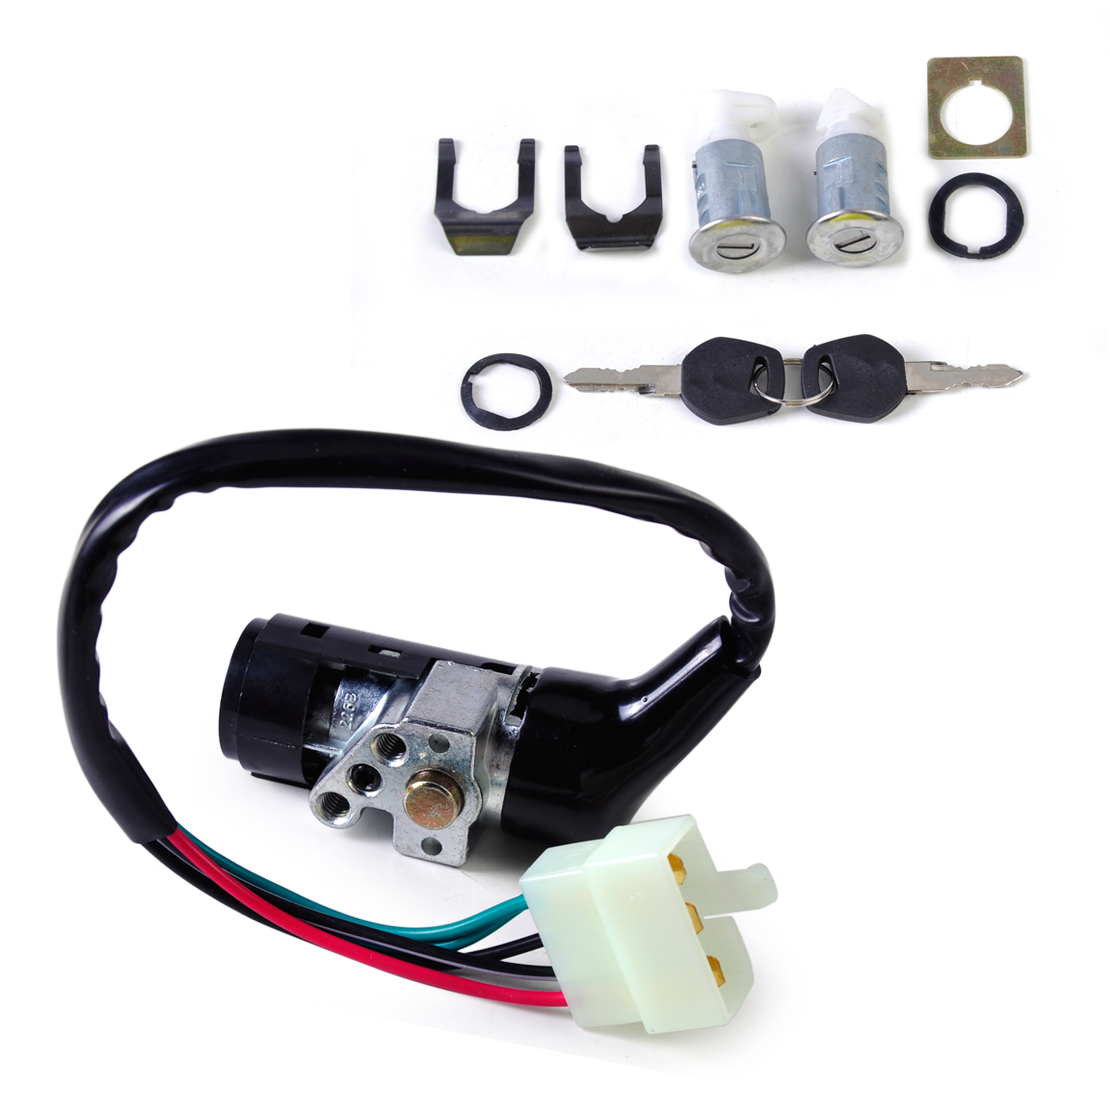 Citall 5 Wire Moped Ignition Switch Key Lock Toolbox